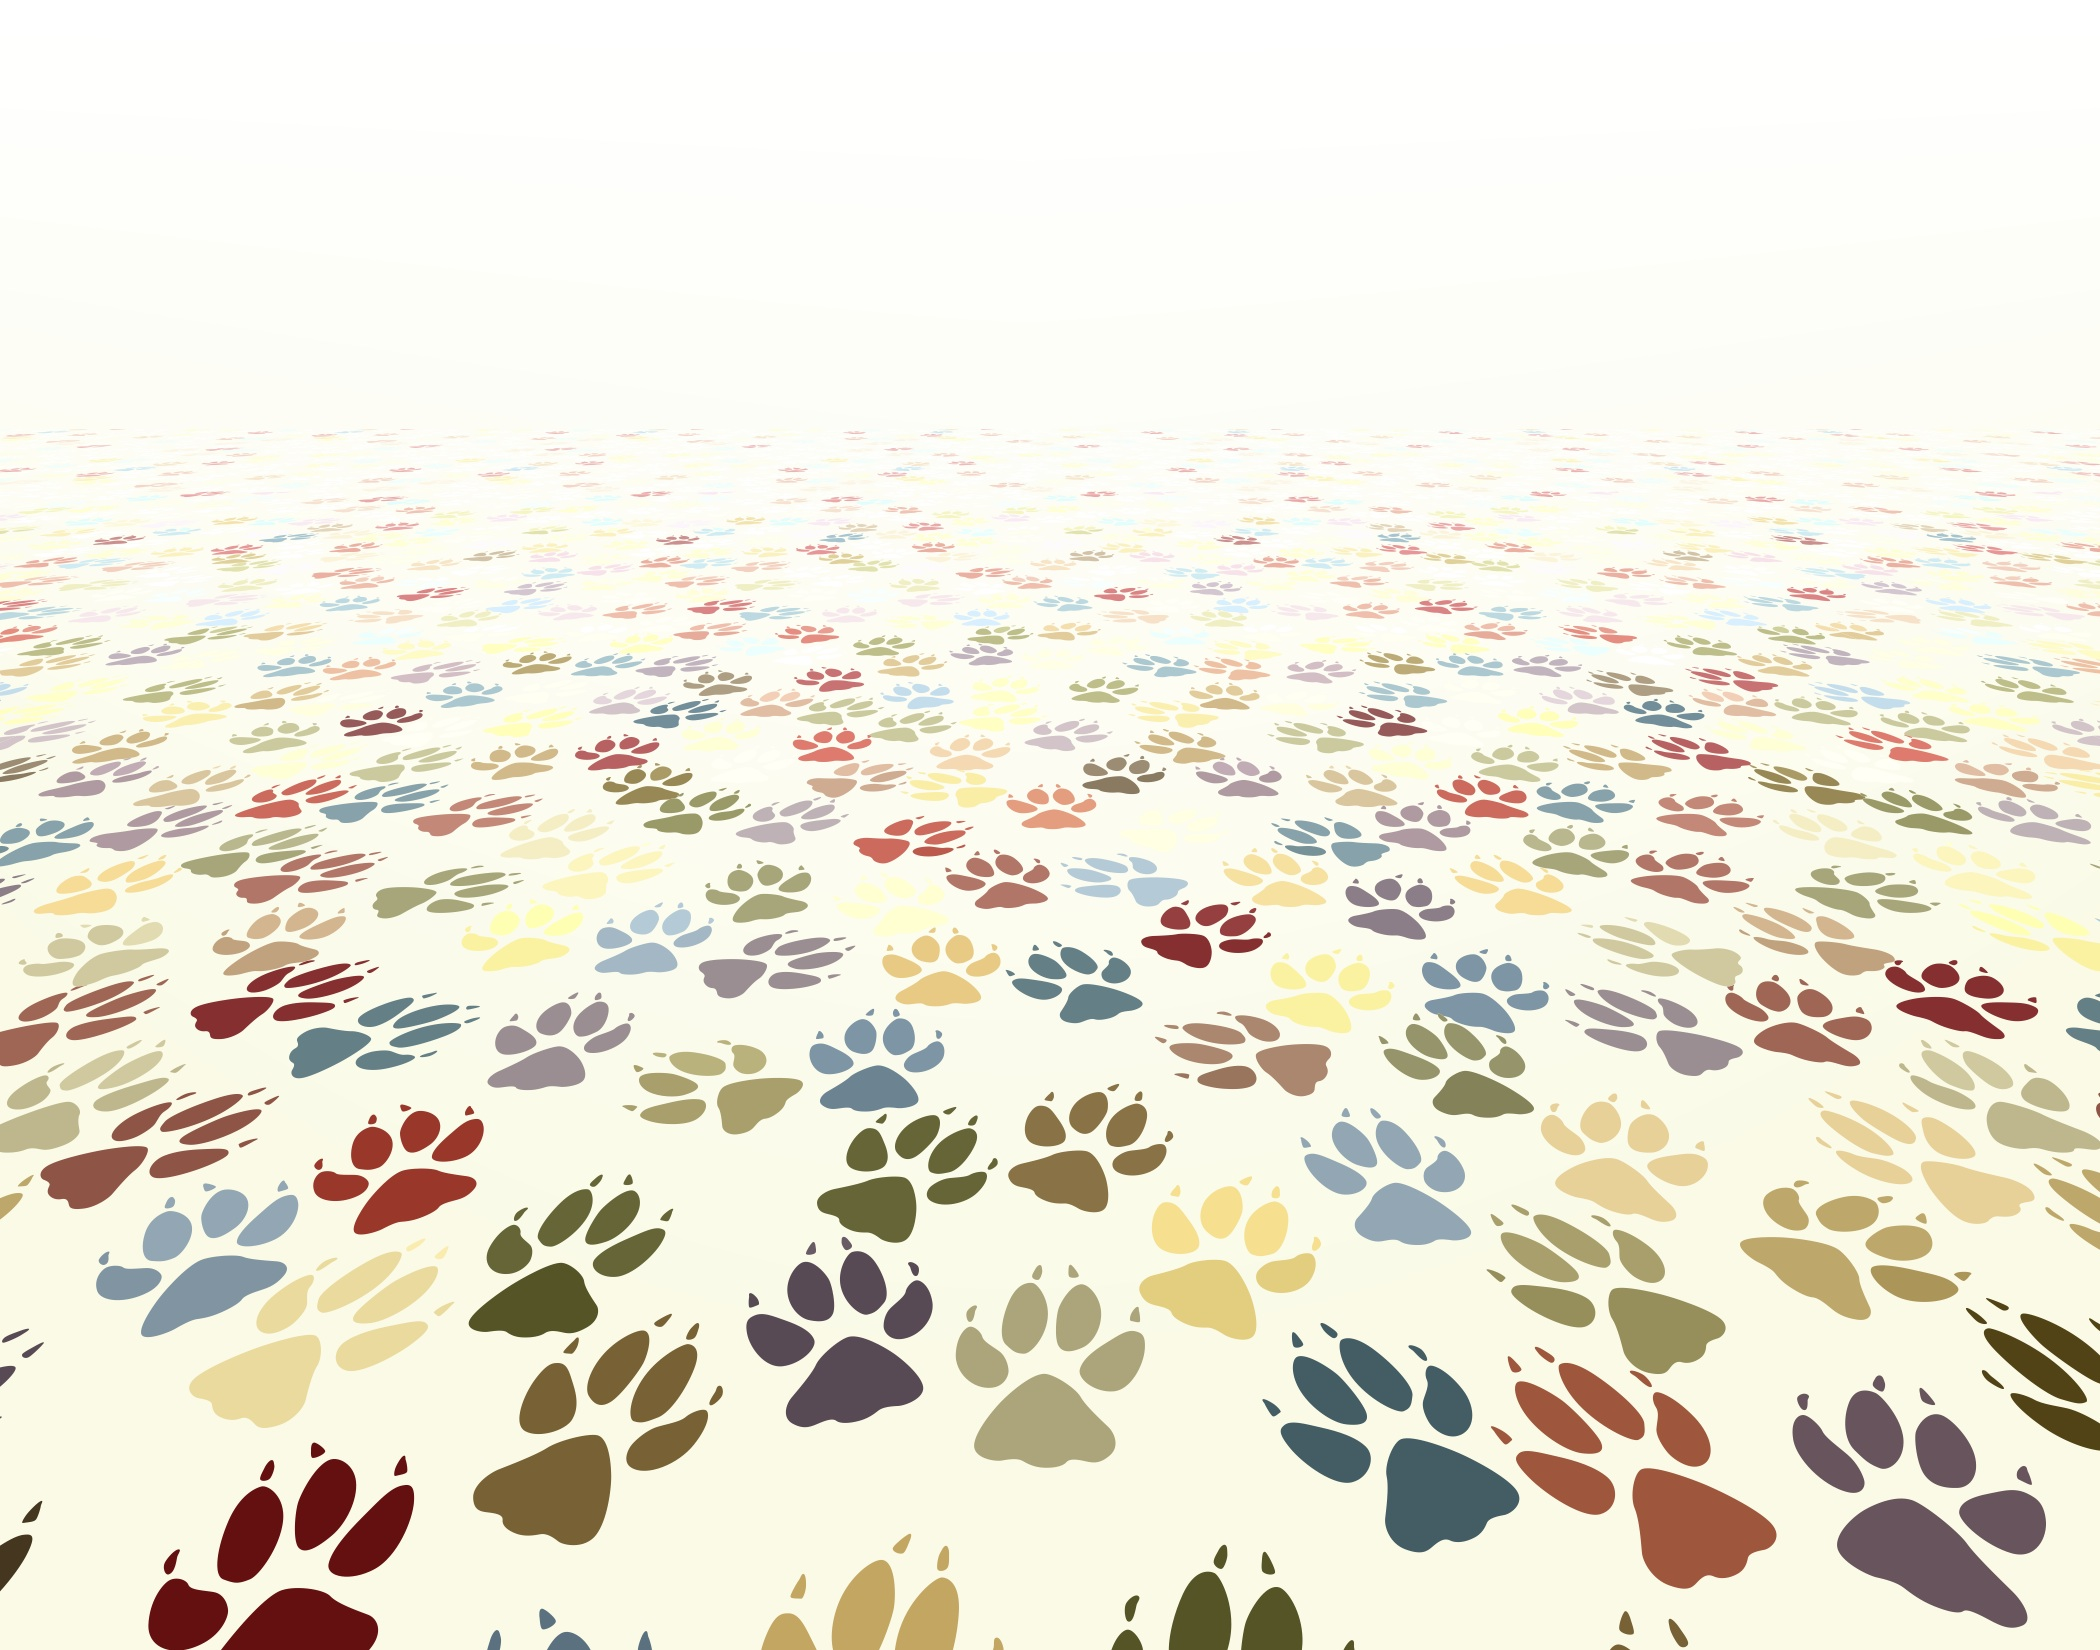 Dog Paws Wallpaper - WallpaperSafari